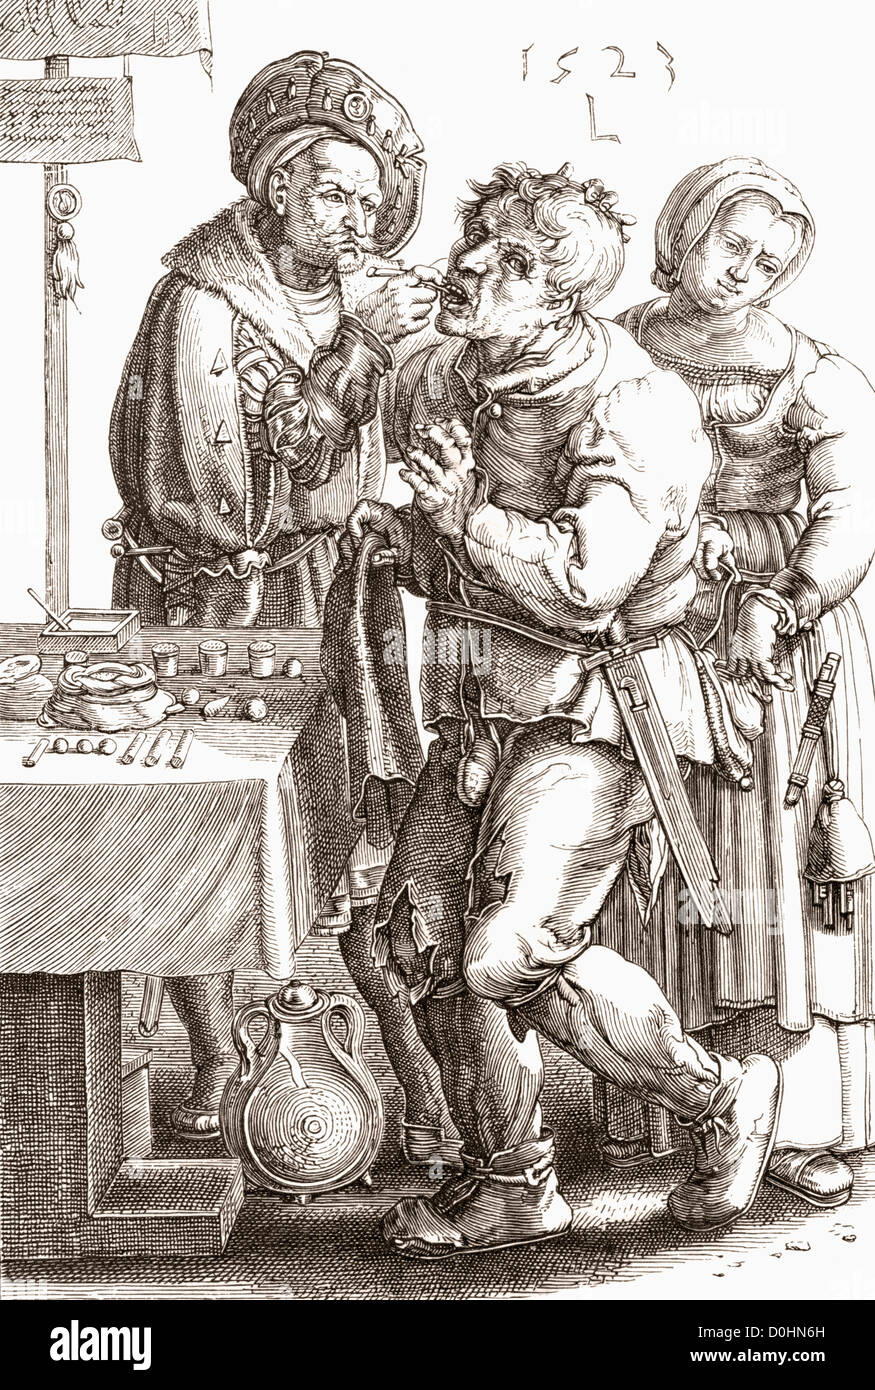 Le Chirurgien by Lucas van Leyden. A medieval dentist at work. - Stock Image